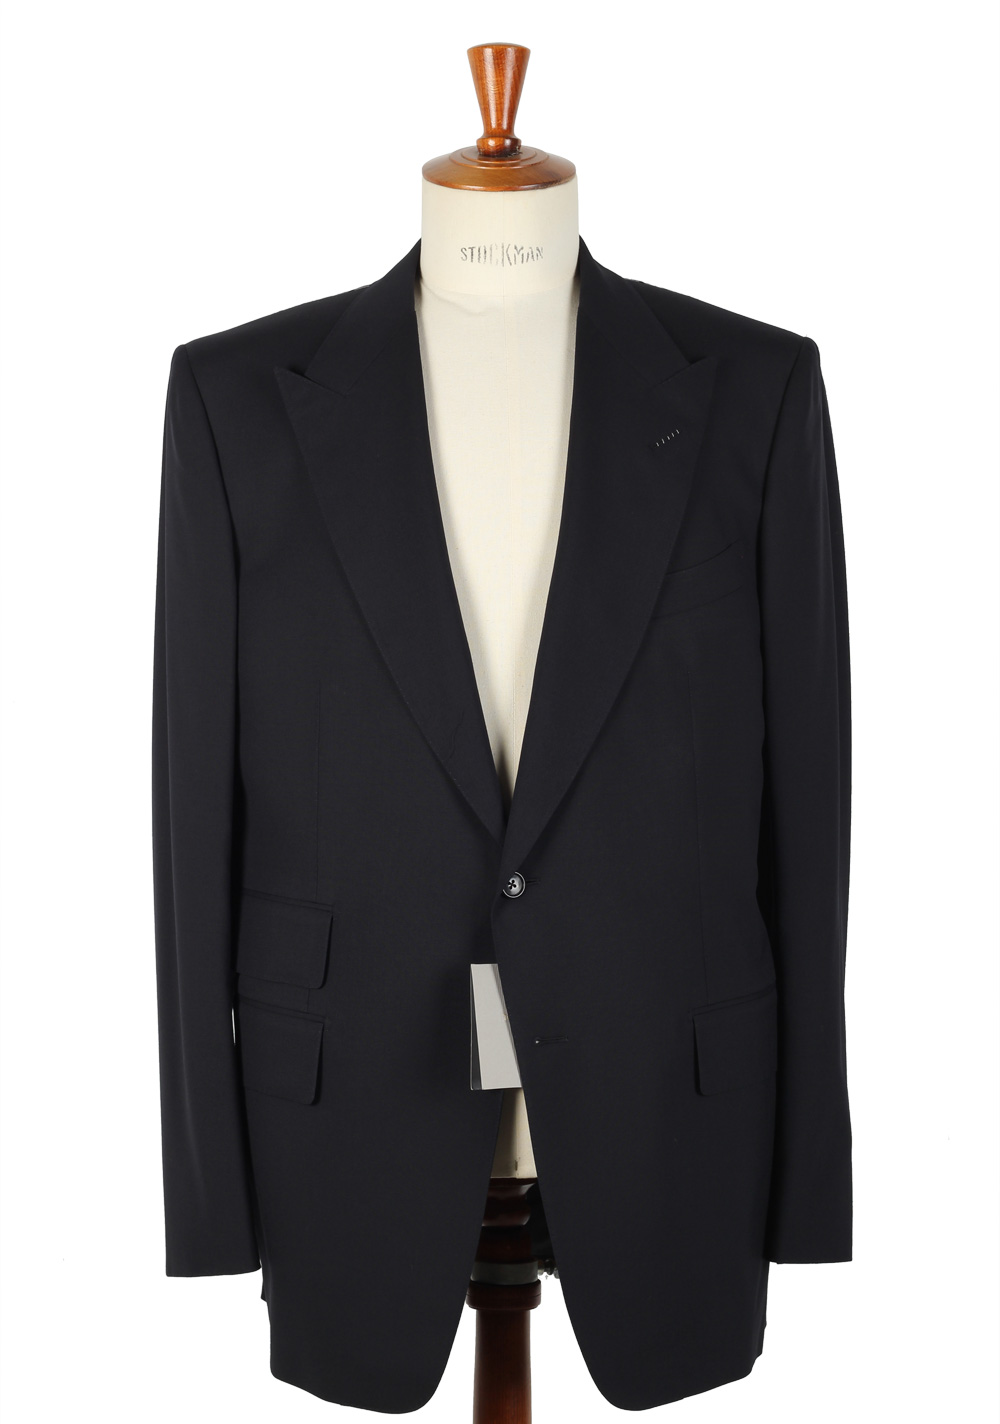 This IL Canto indigo denim suit is a contemporary, urban spin on the classic 3-piecer. The two-button jacket features peaked lapels with detachable faux leather detail that gives it tuxedo appeal. The high button vest has tabs at the waist to adjust the fit.